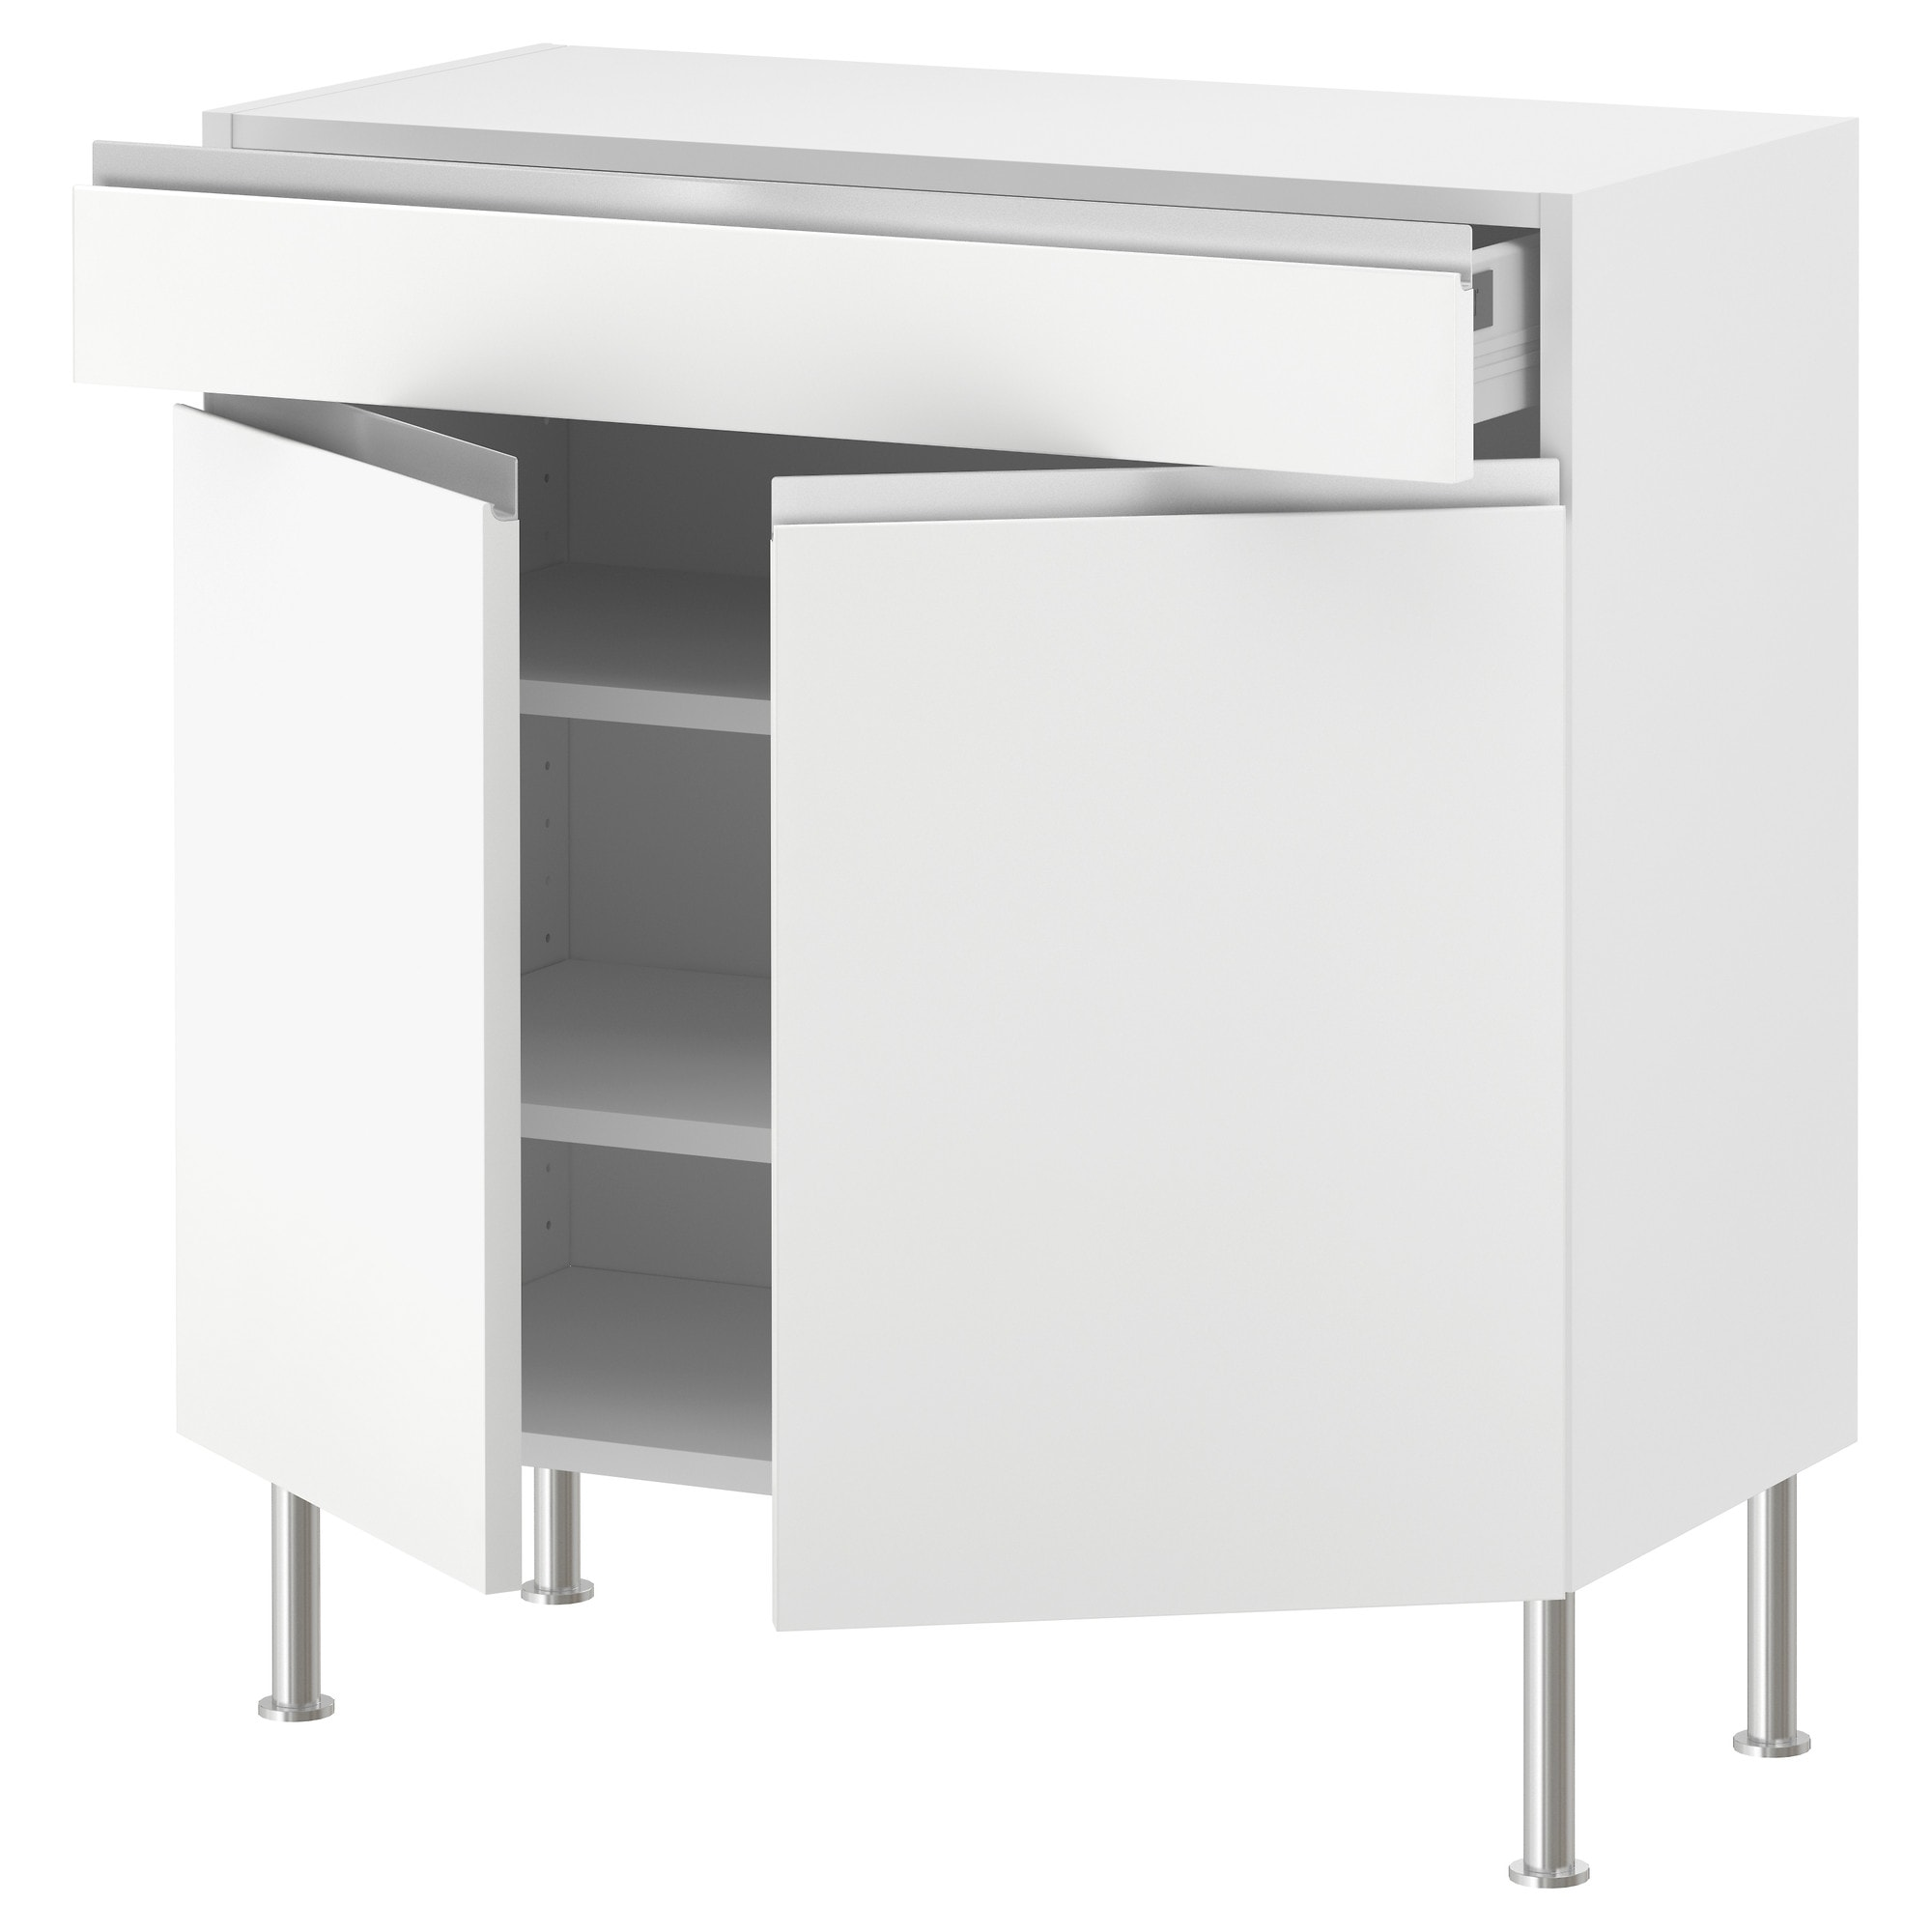 FAKTUM/RATIONELL system - Base cabinets & Wall cabinets - IKEA